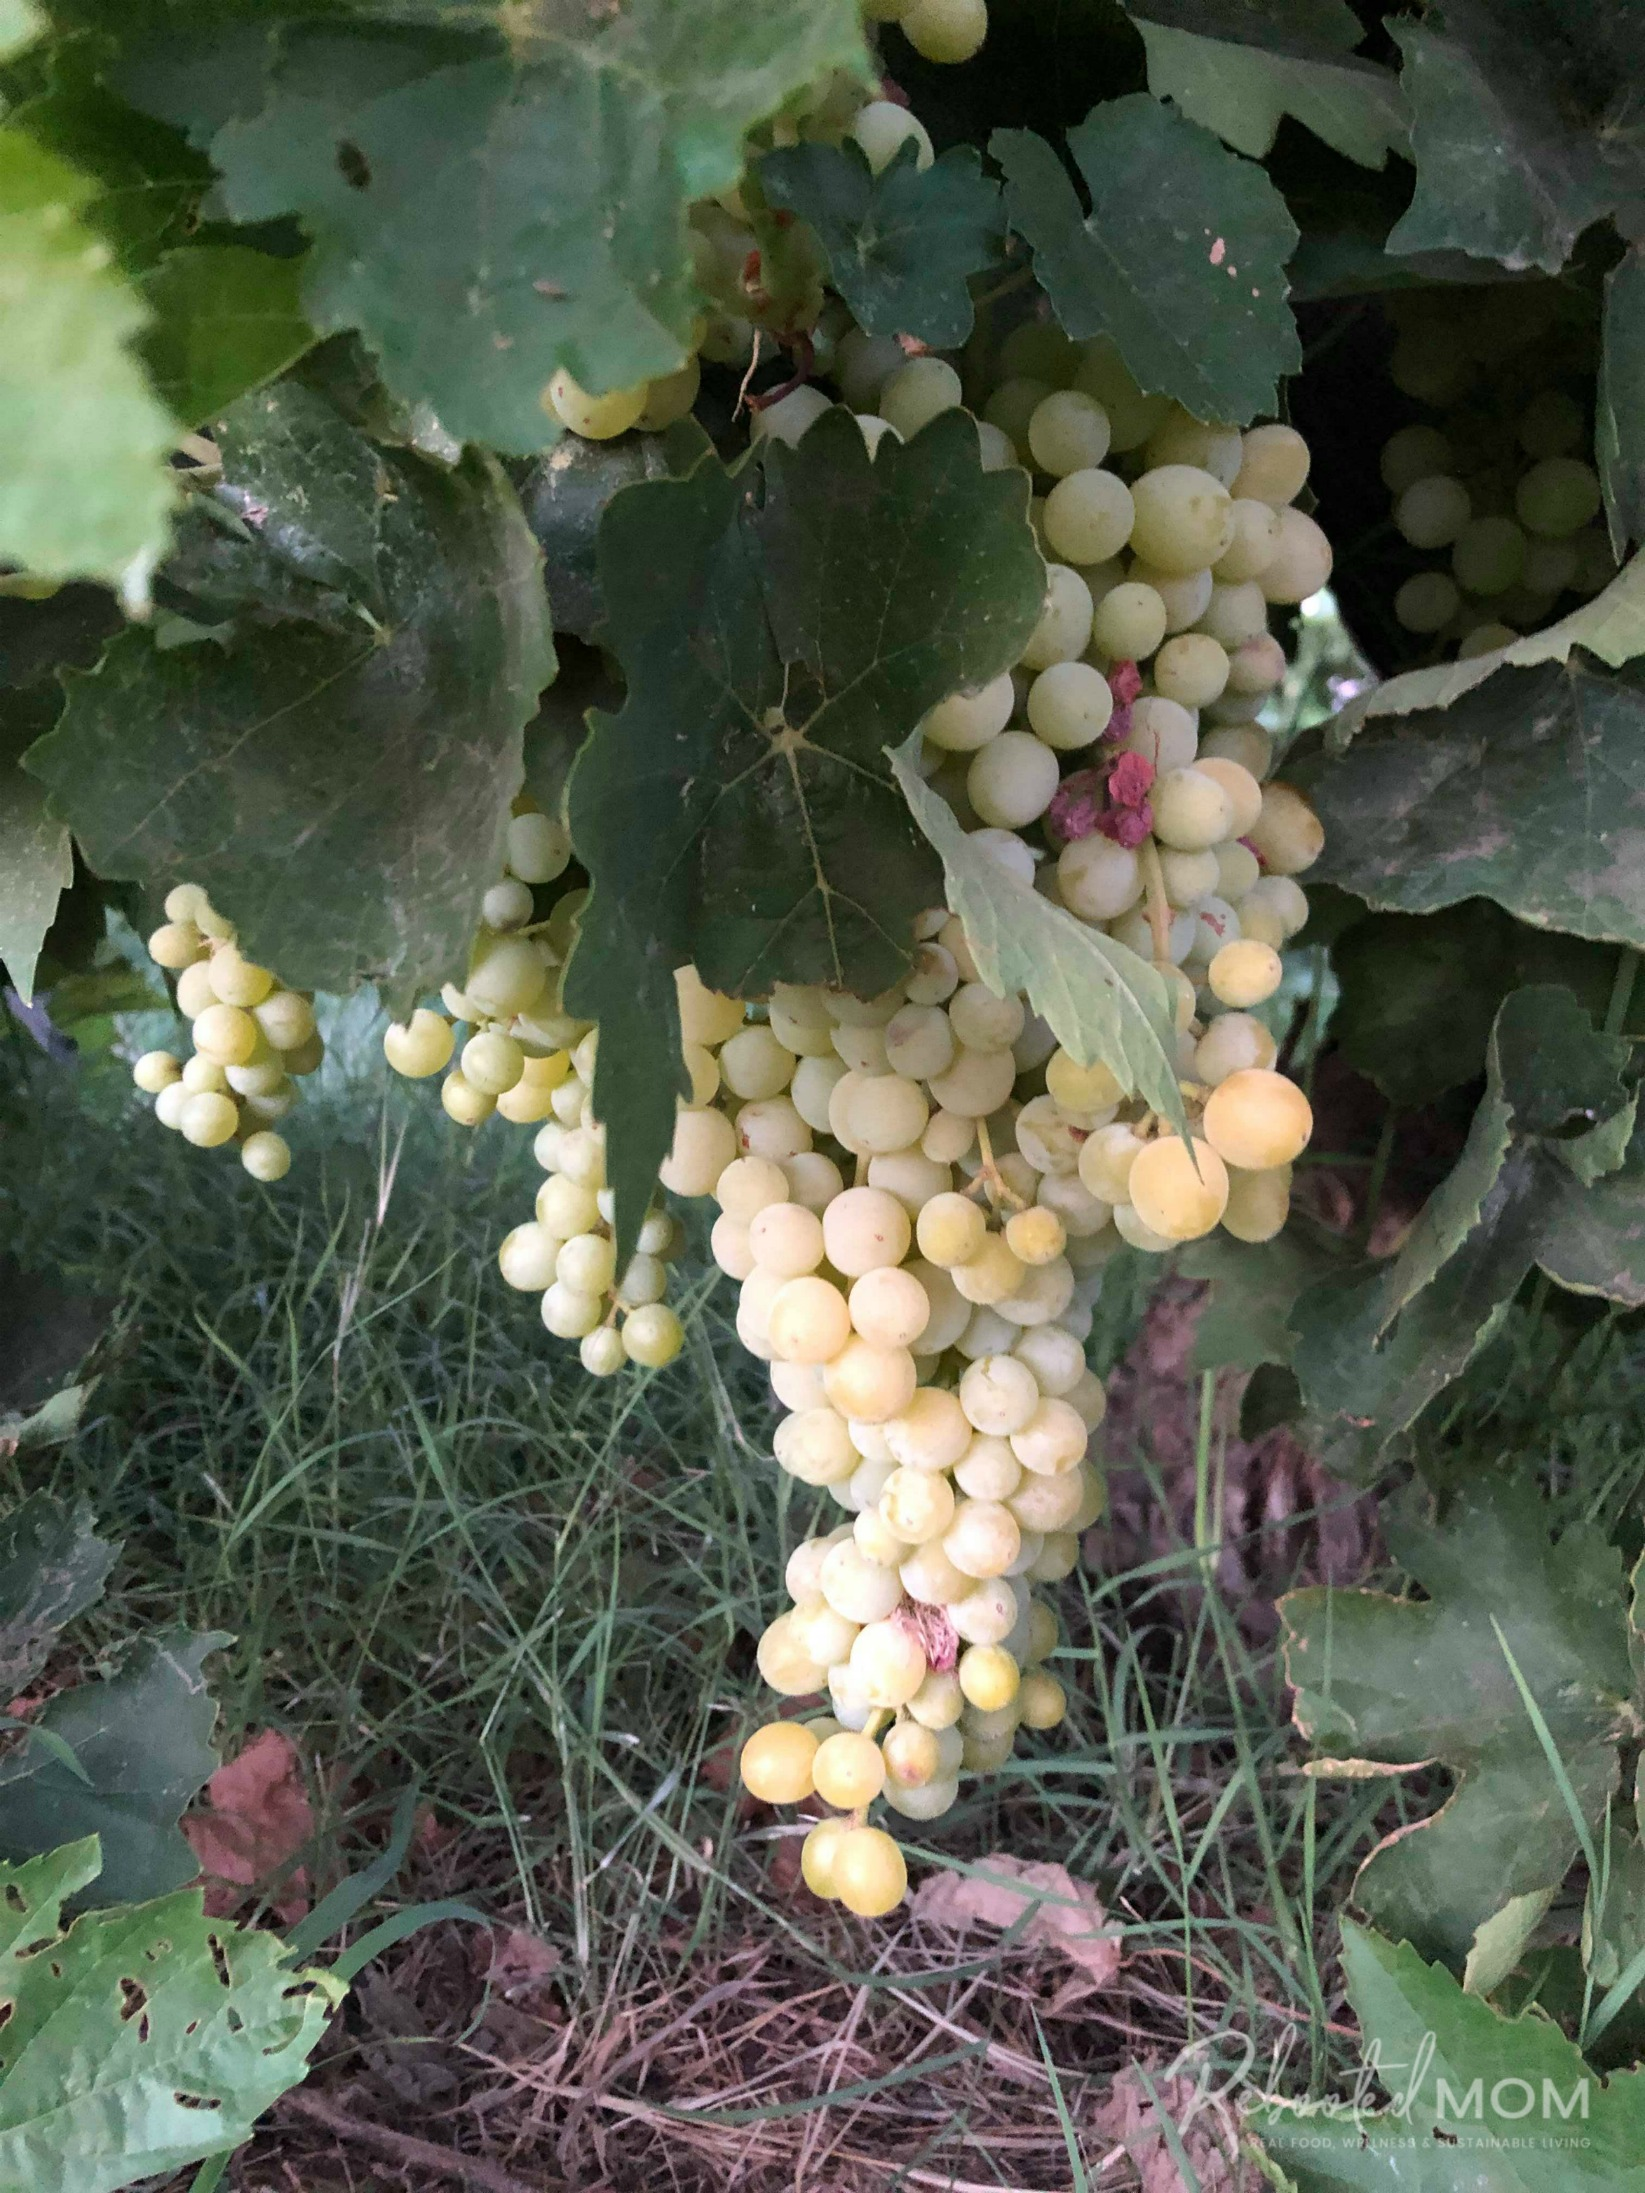 Grapes in an Arizona field